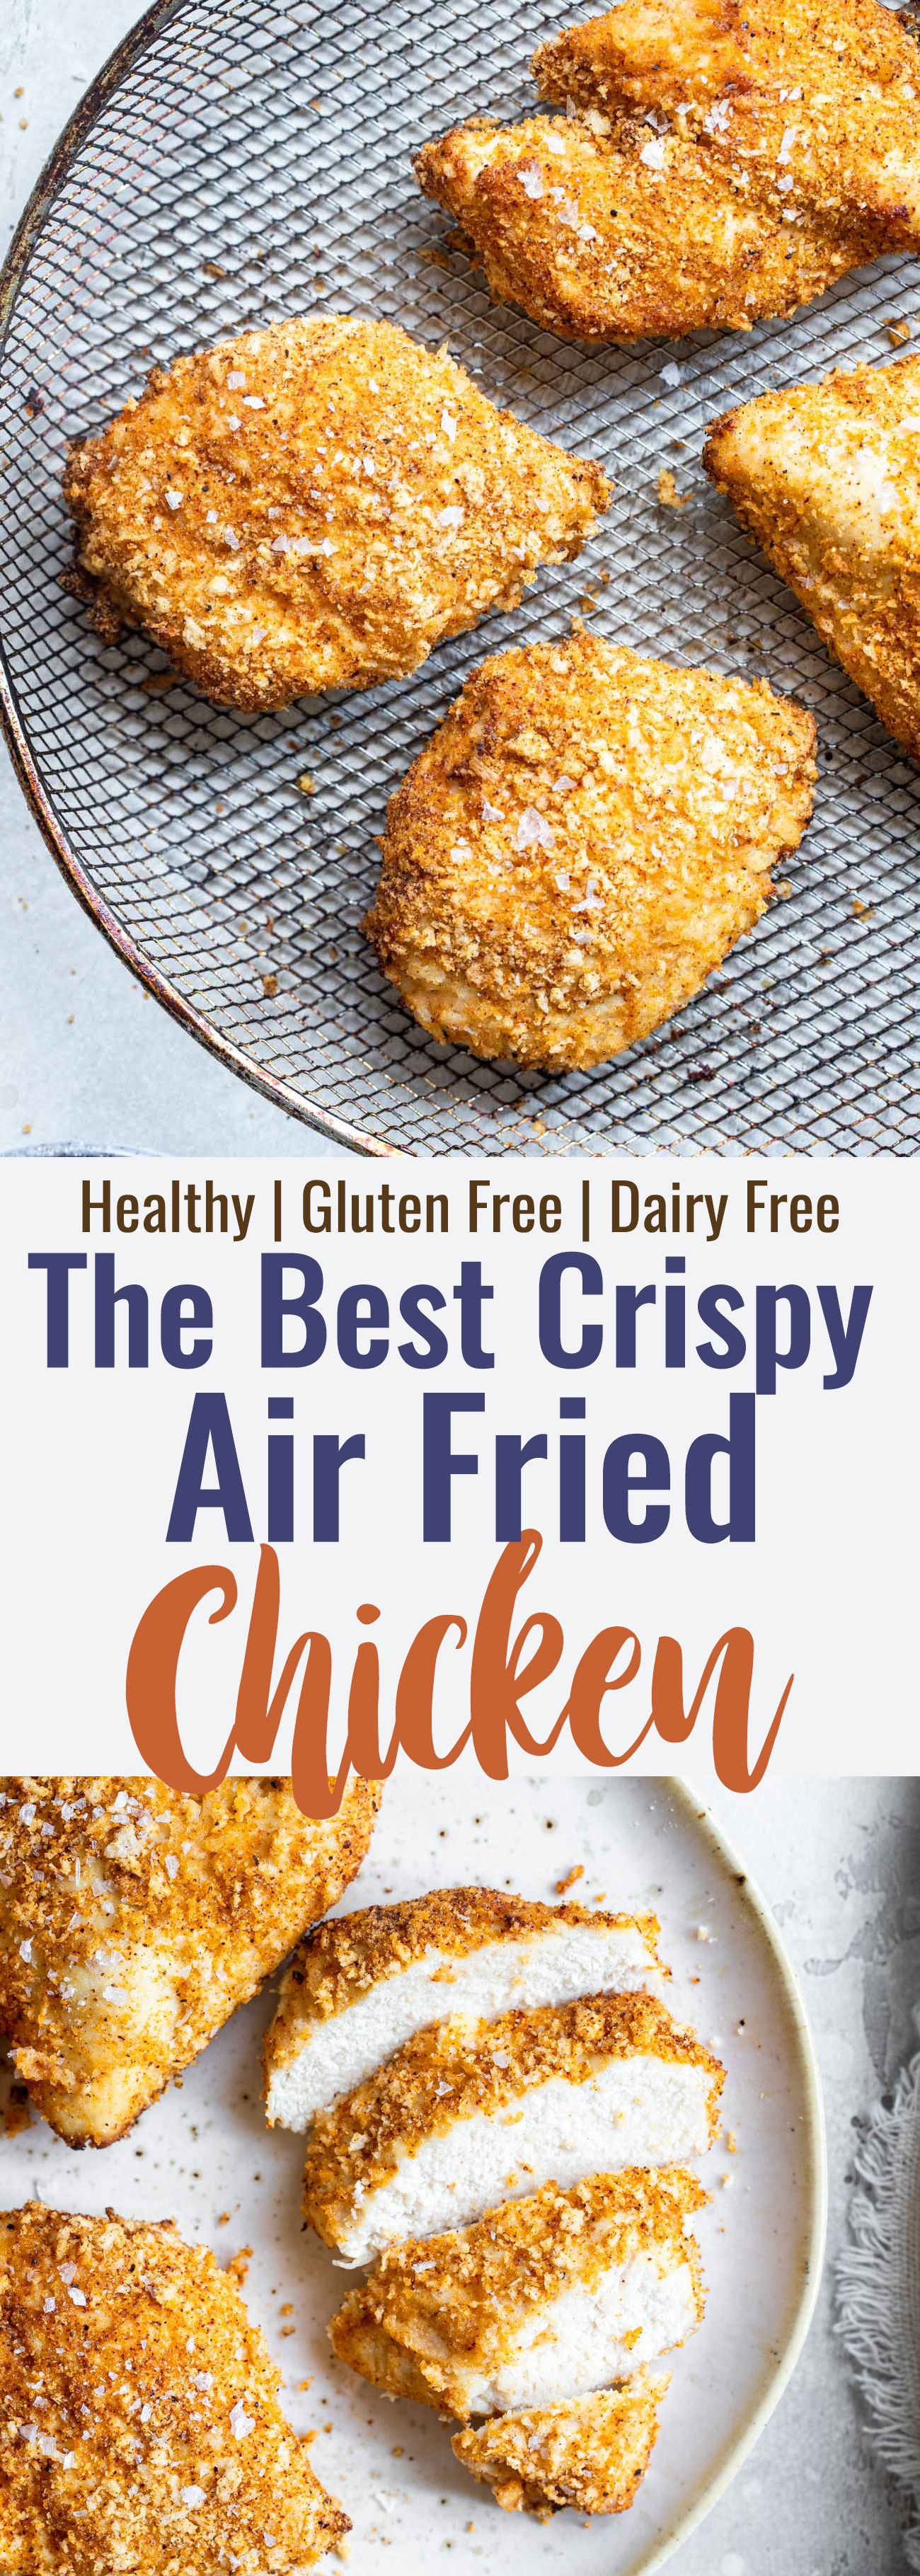 Crispy Breaded Air Fryer Chicken Breast | Food Faith Fitness